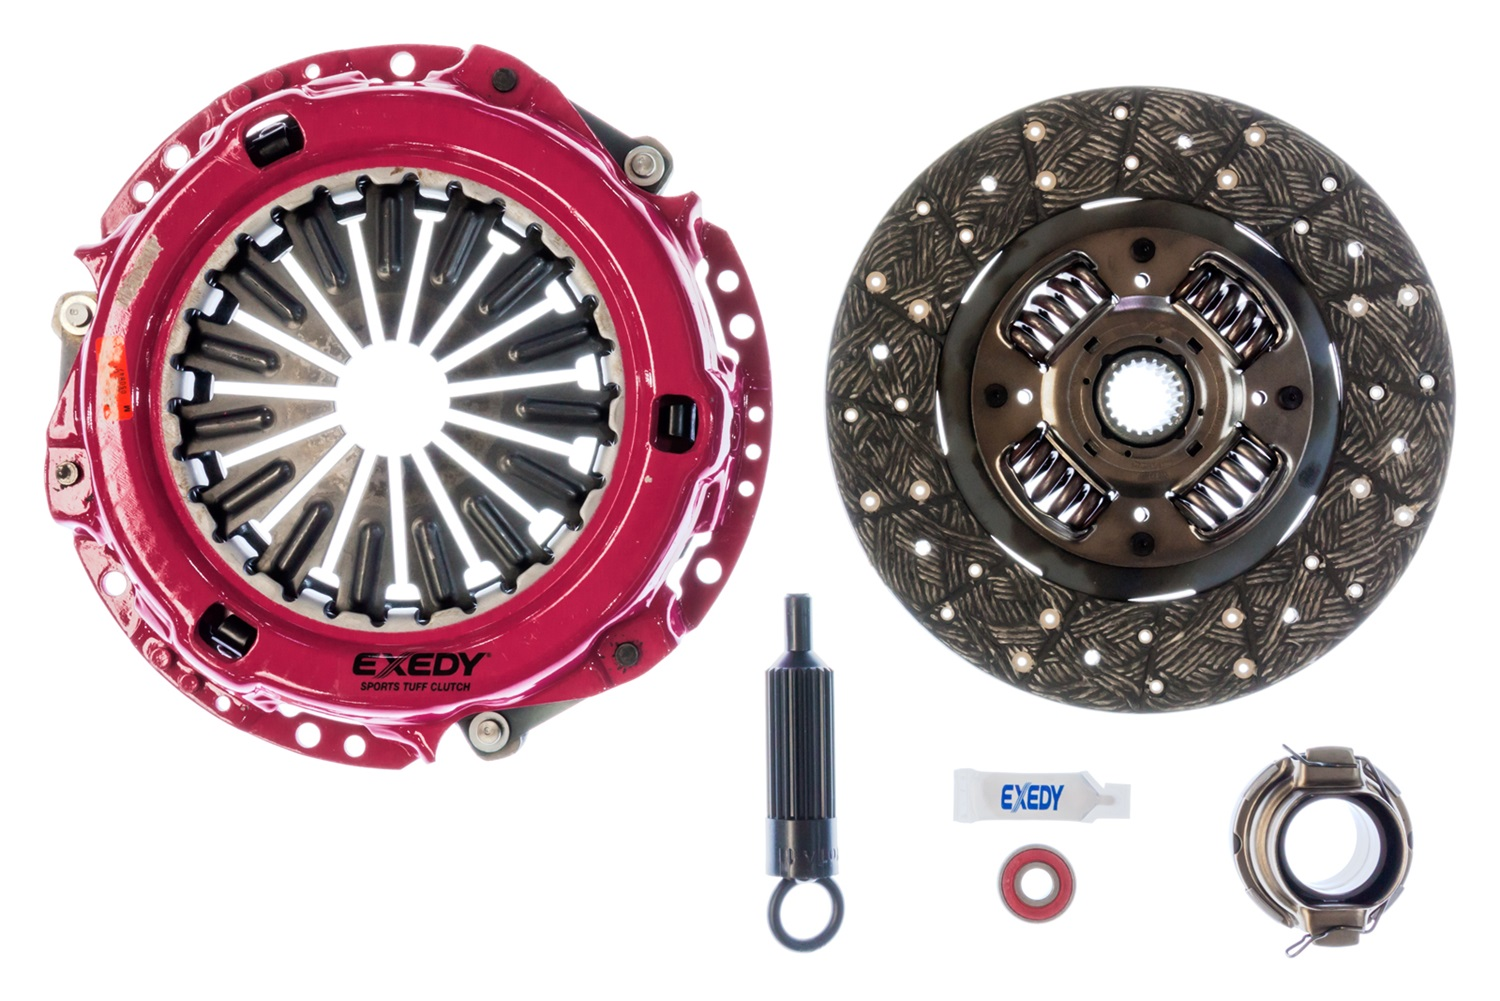 Exedy Racing Clutch 16805 Stage 1 Organic Clutch Kit